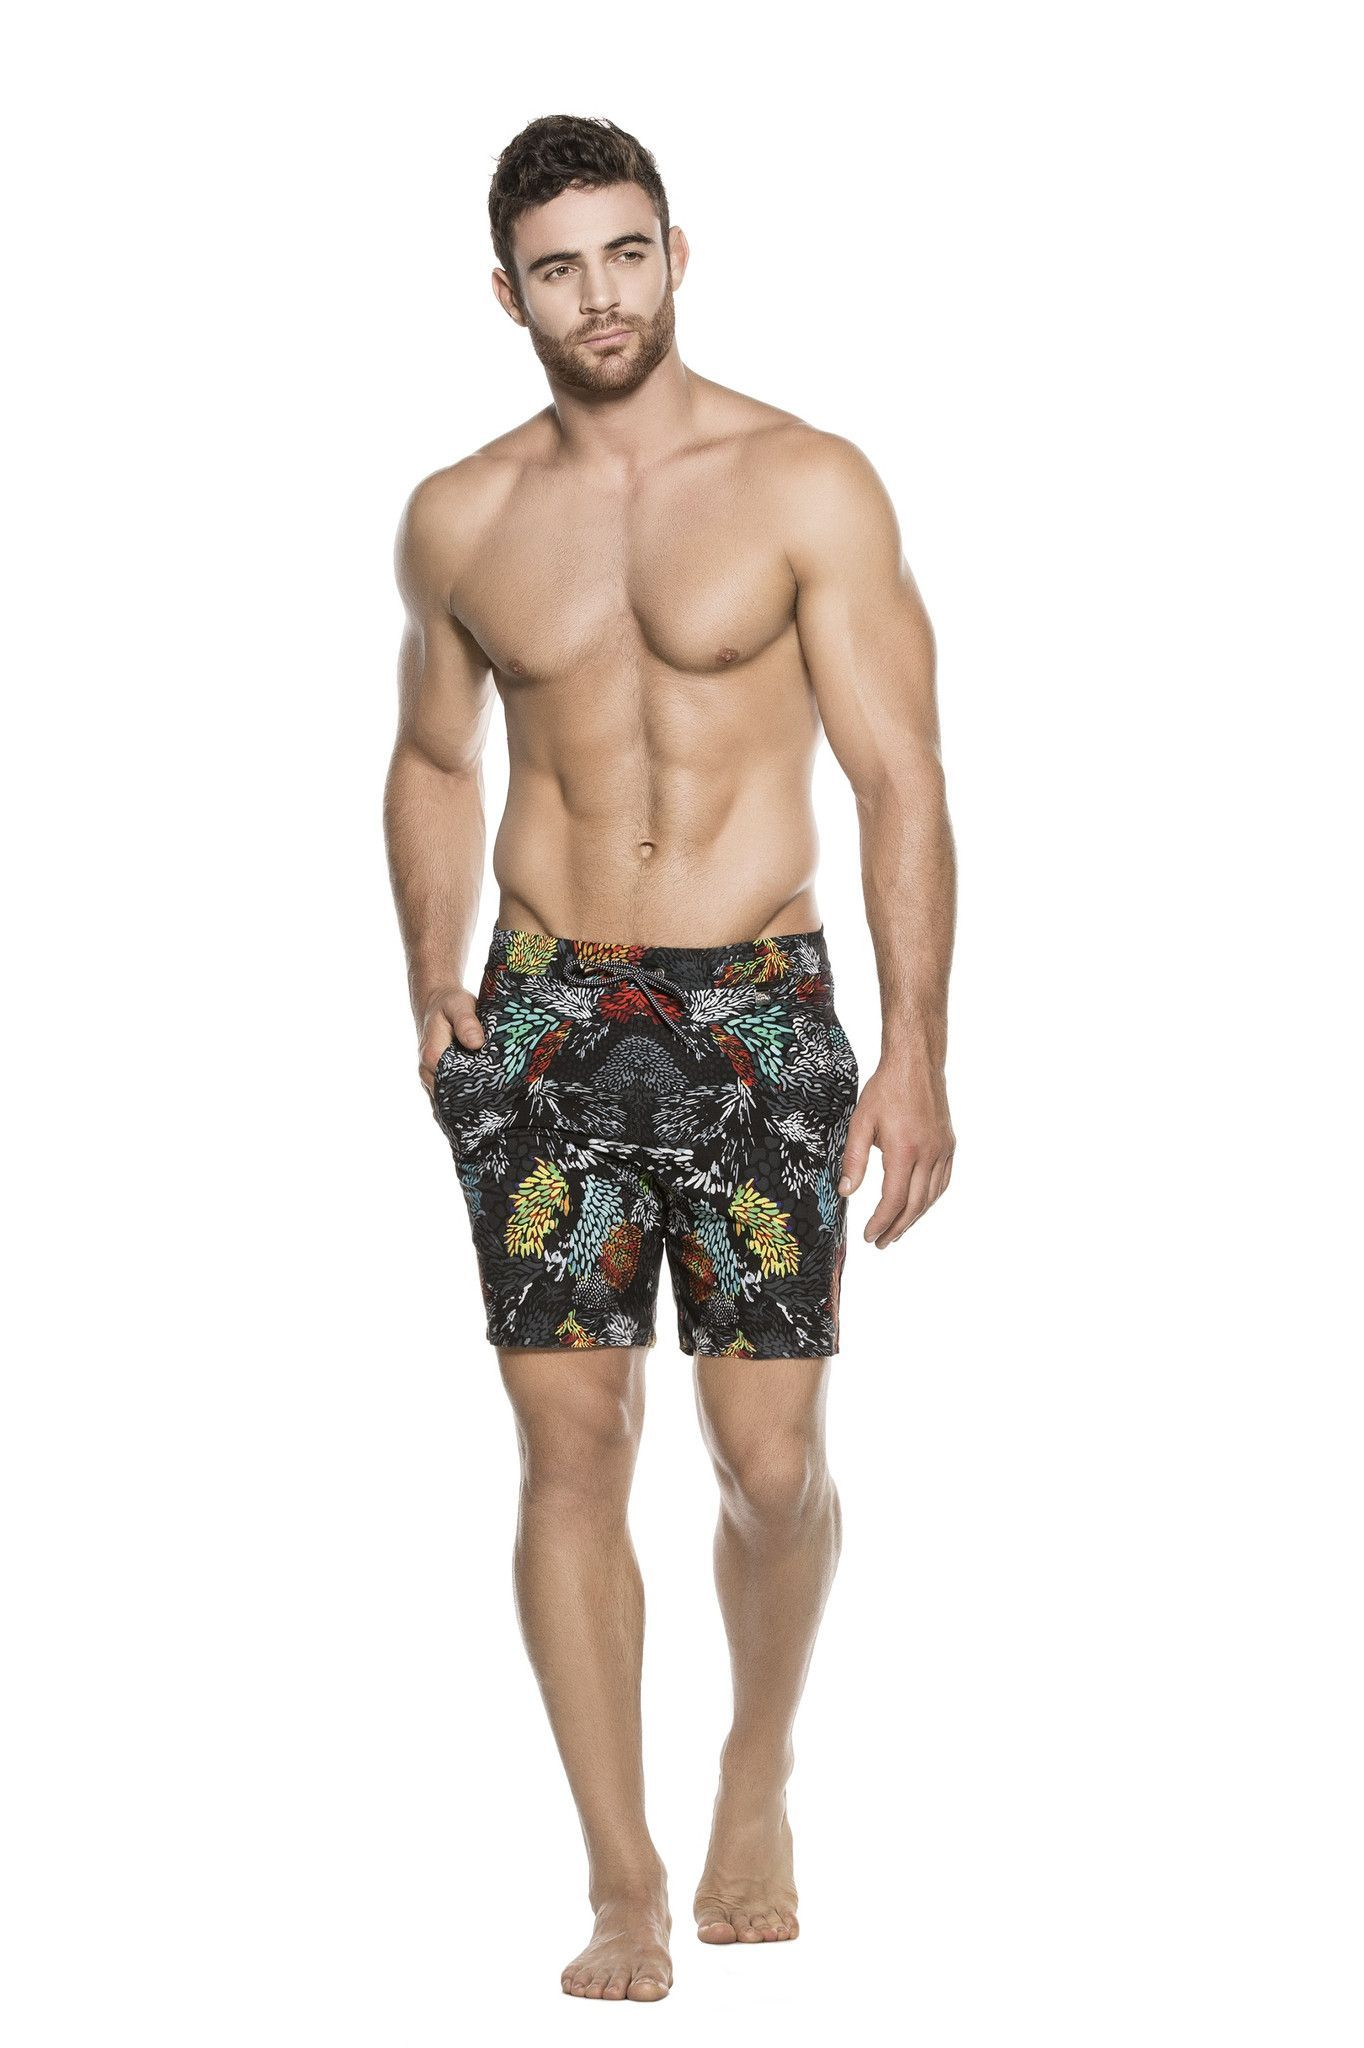 Agua Bendita - Mens Designer Swim Trunk – Agua Bendita Swimwear knows how  to make a mens designer swim trunk. The Leoo swim short features a modern  print ... ef9e339d849